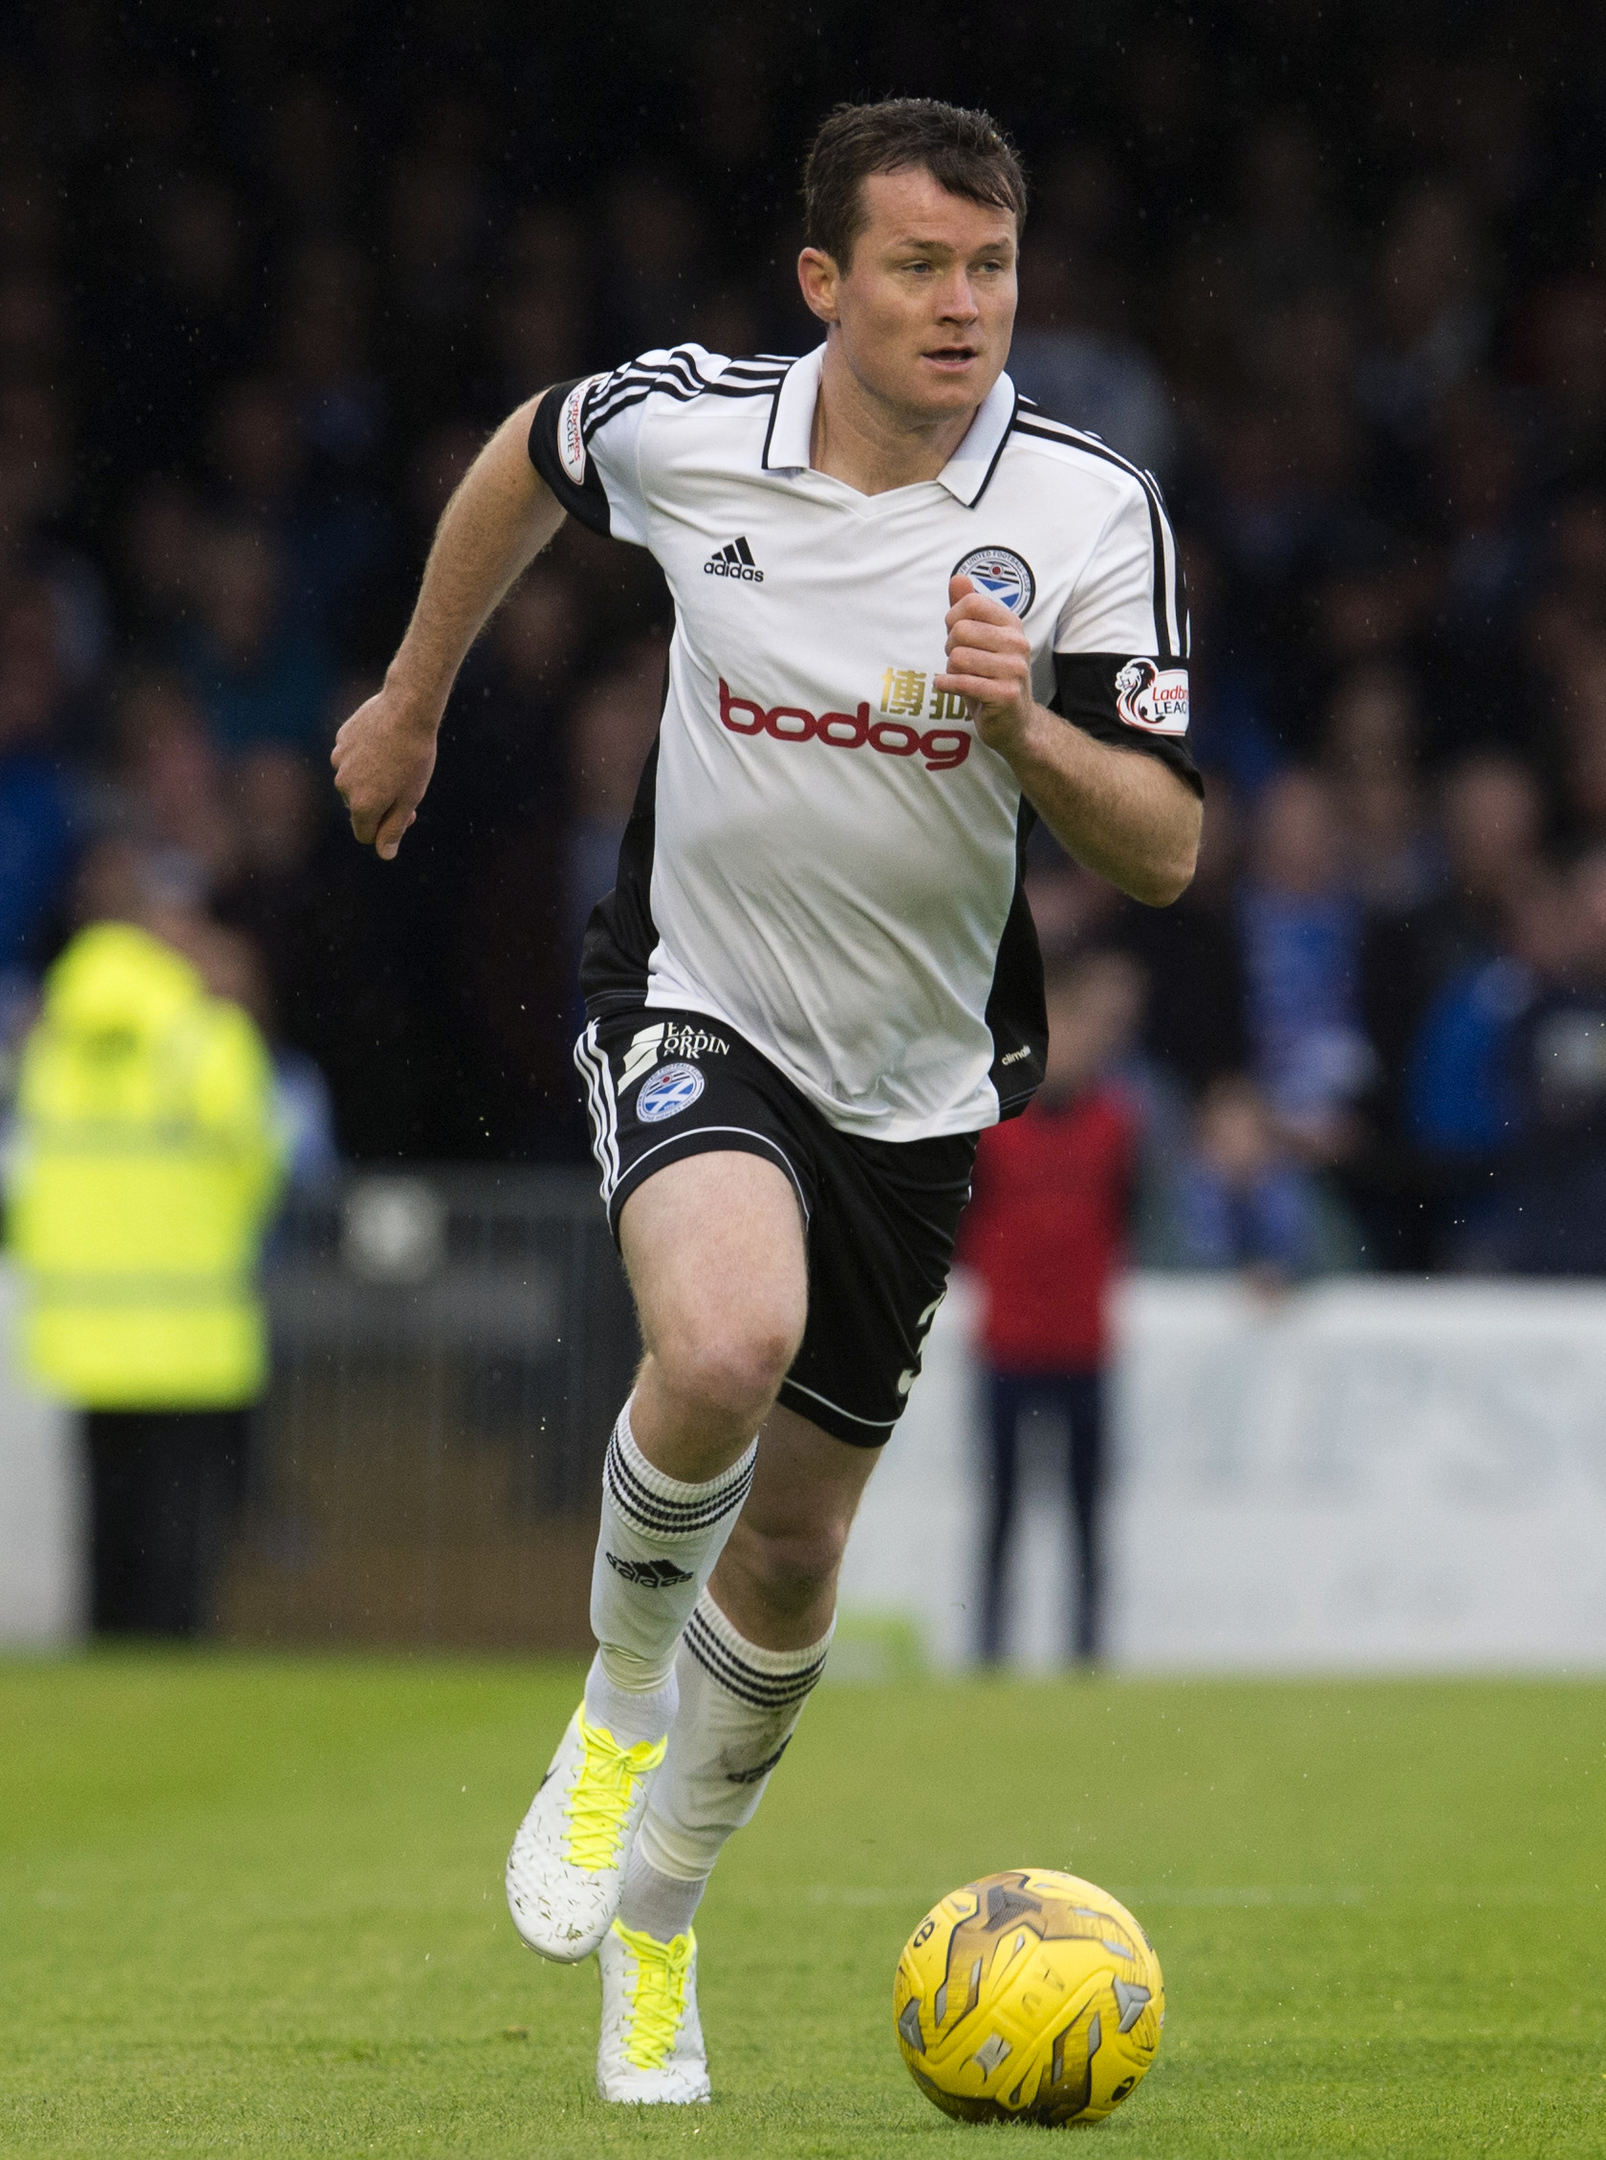 Peterhead's new signing Paddy Boyle in action for Ayr United.